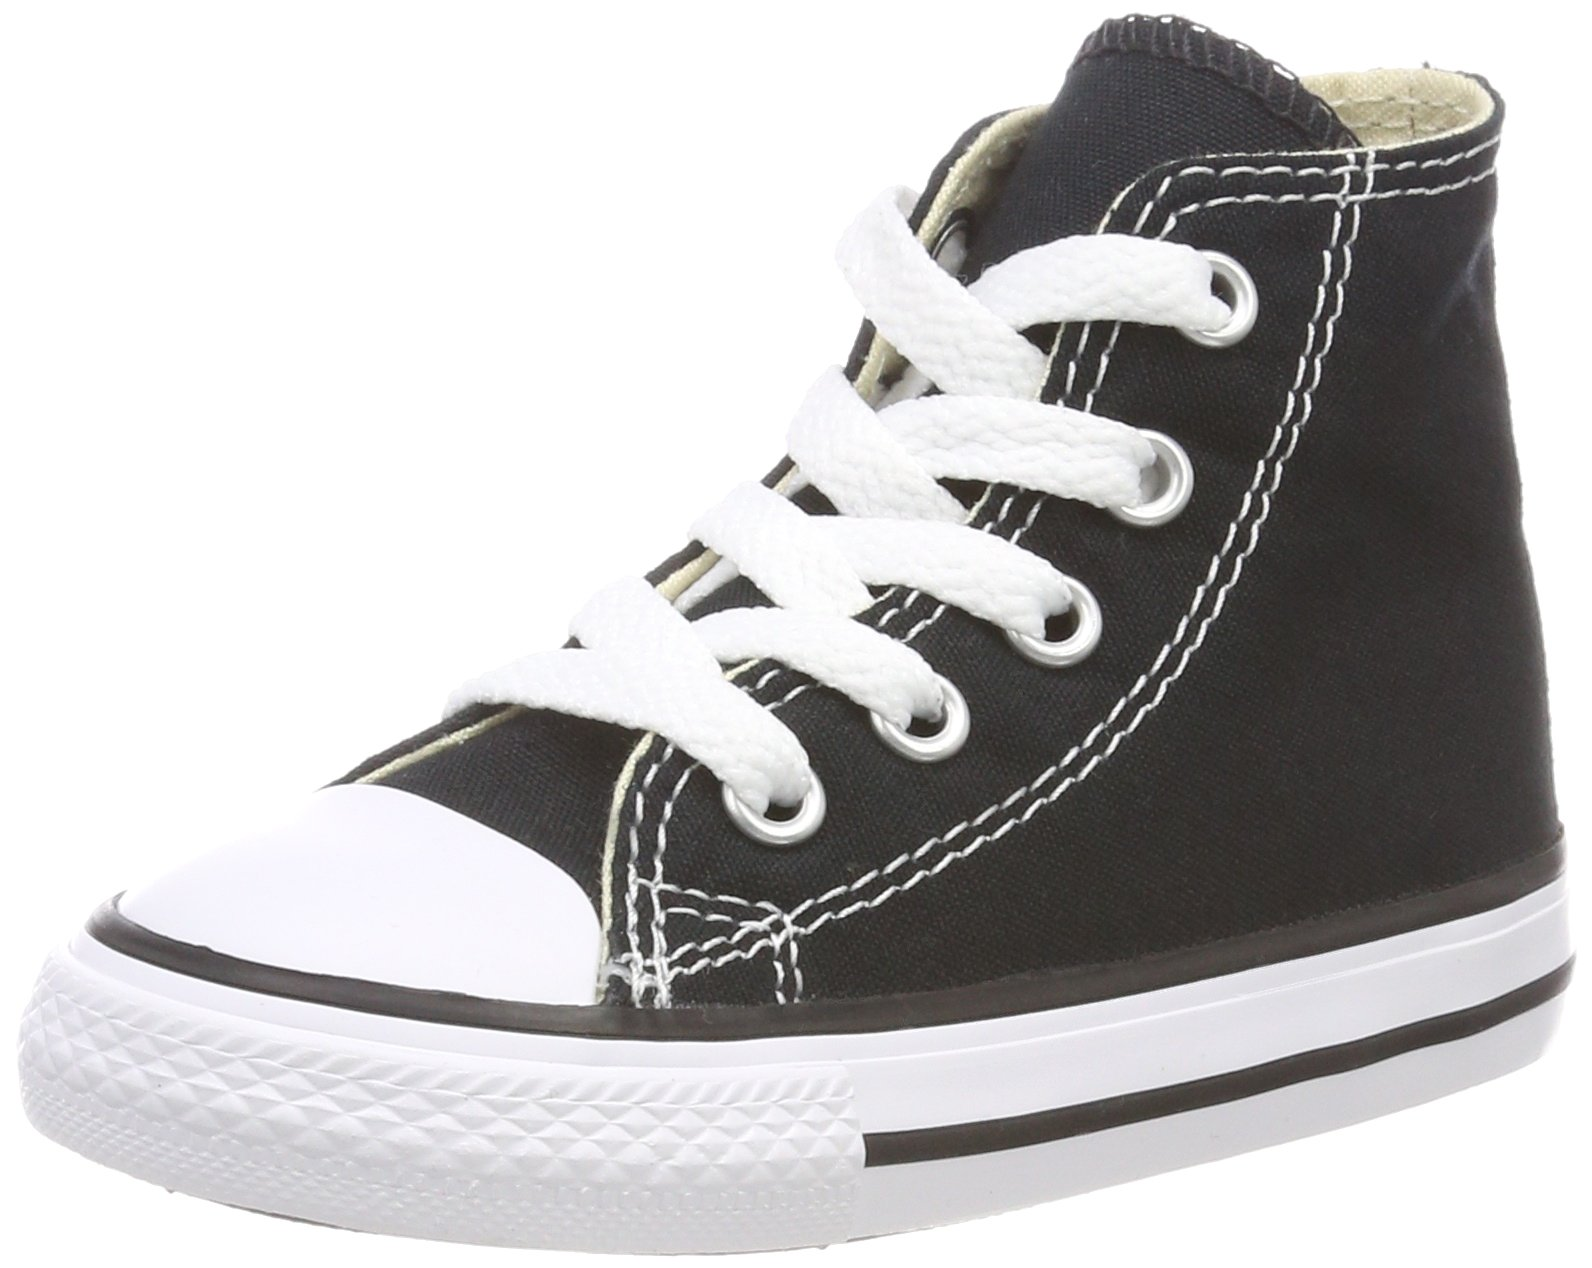 Converse Chuck Taylor All Star Canvas High Top Sneaker, Black, 2 M US Little Kid